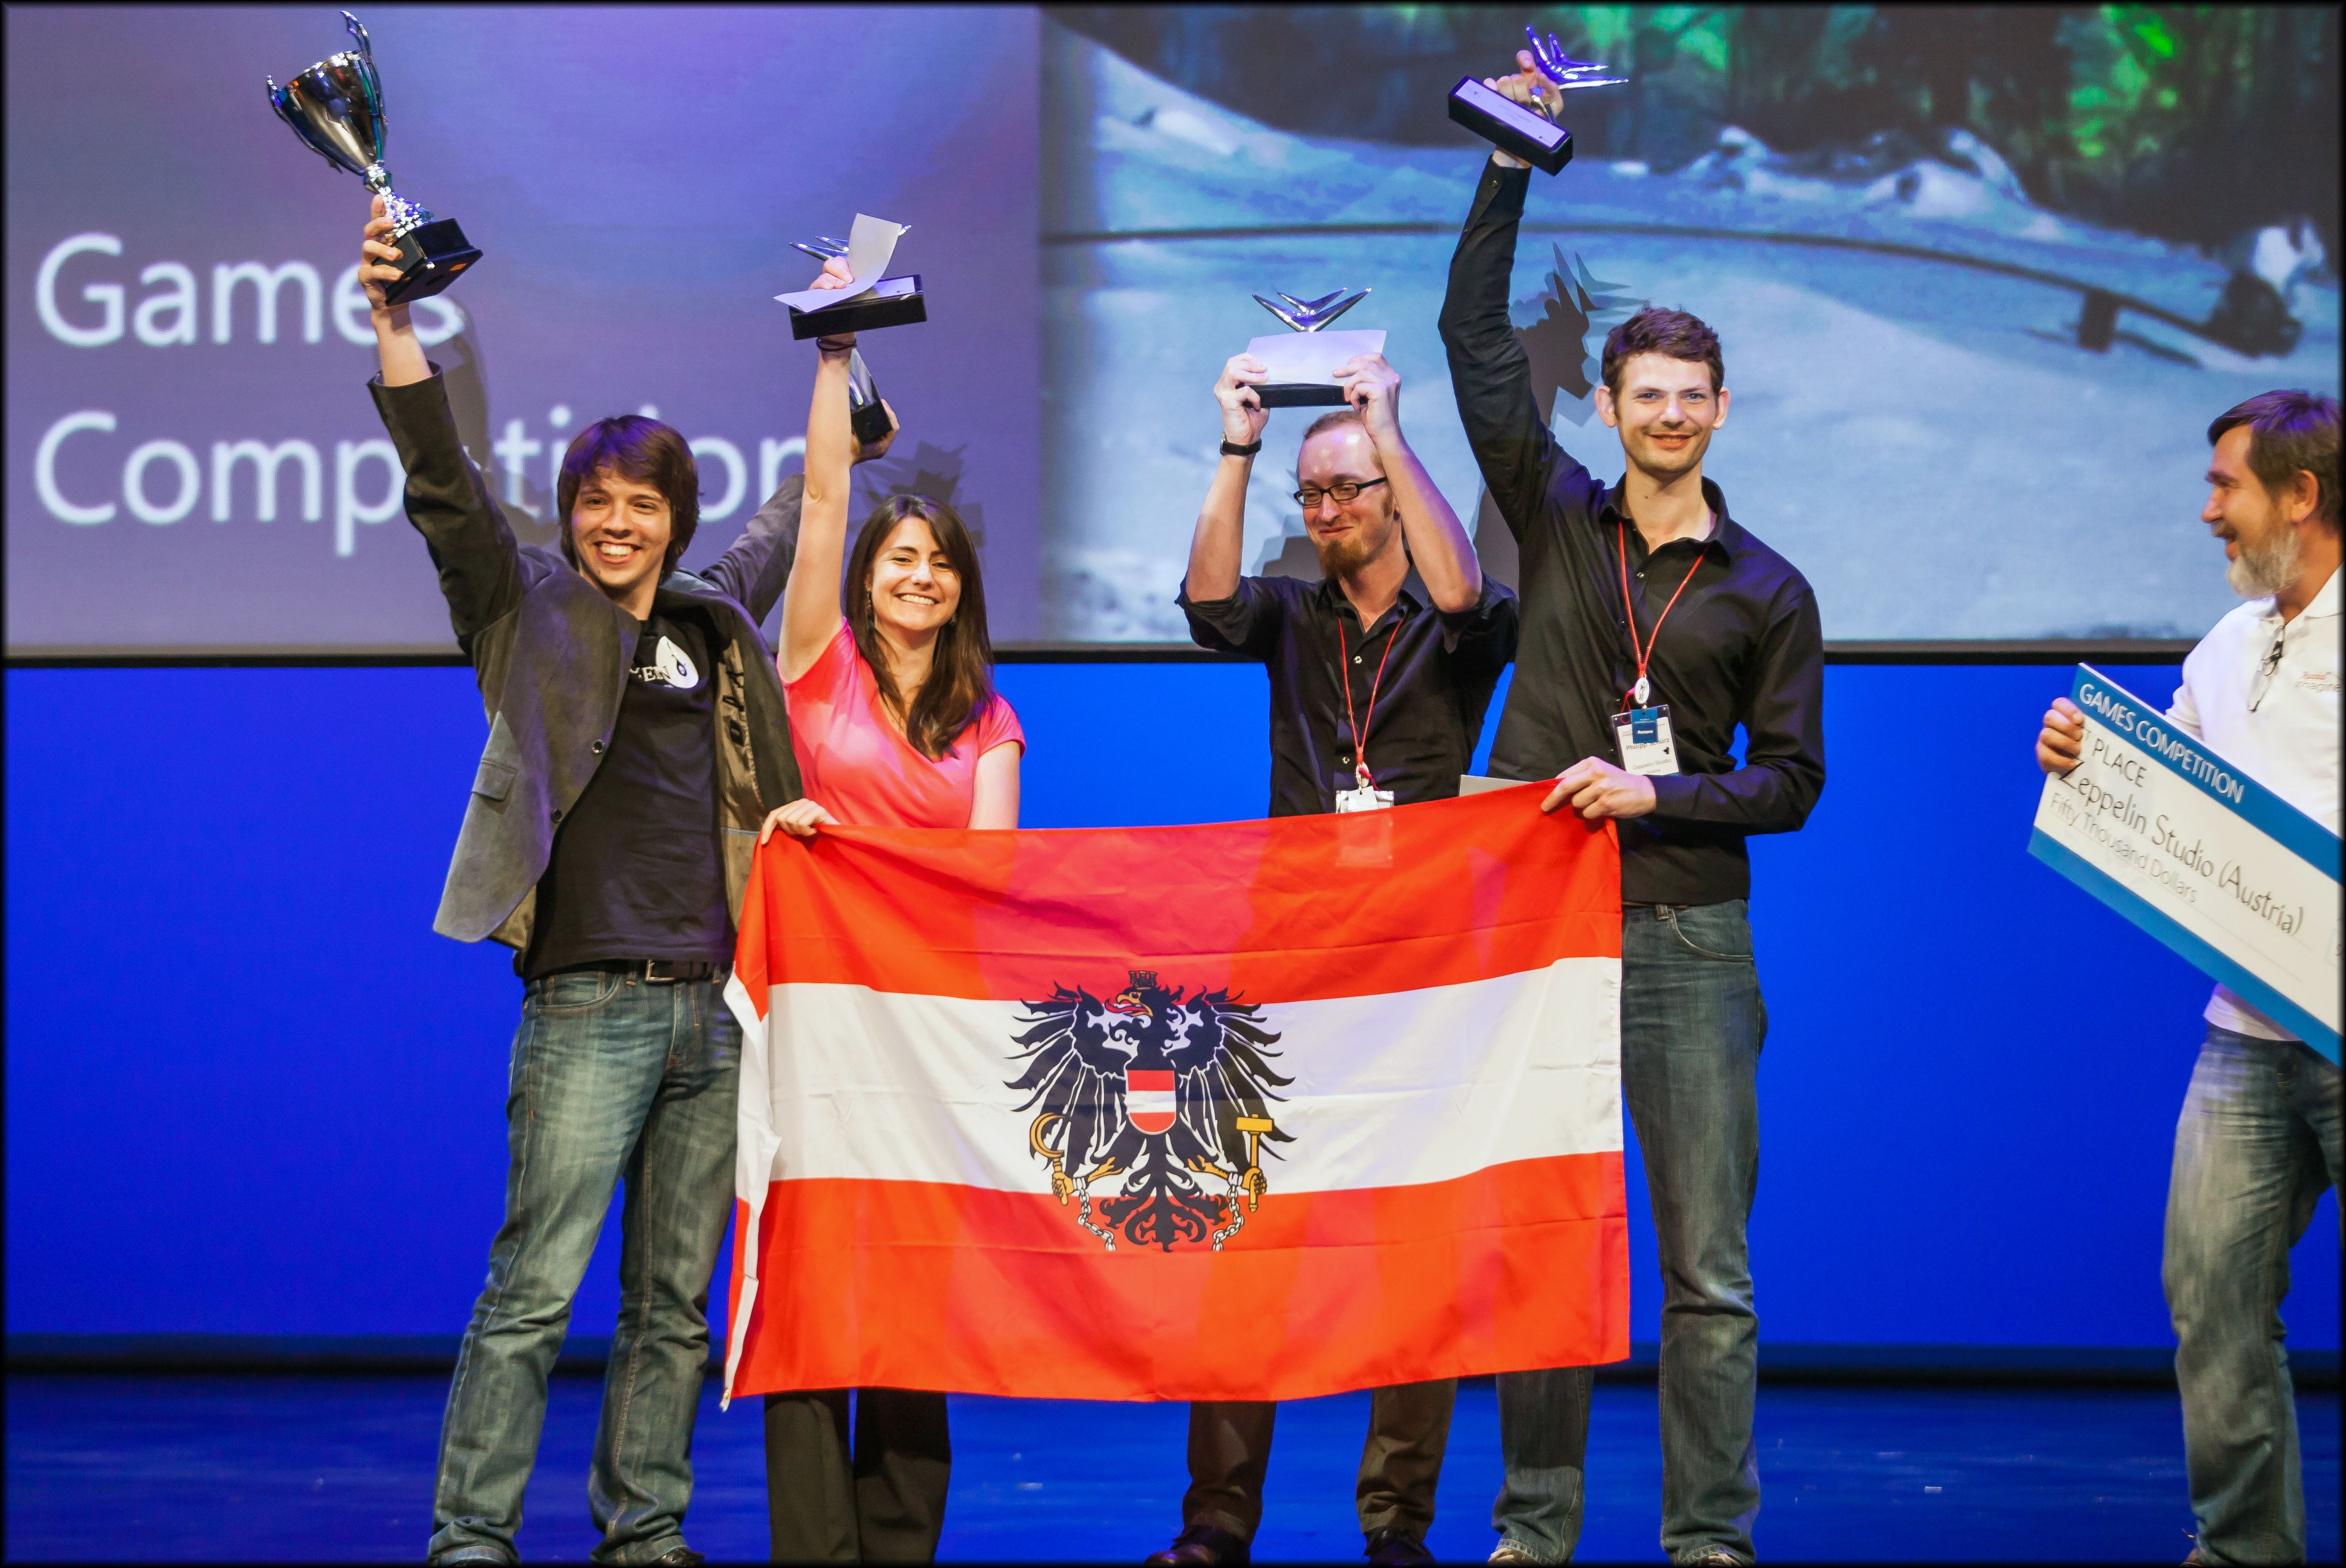 Imagine Cup - We Won!